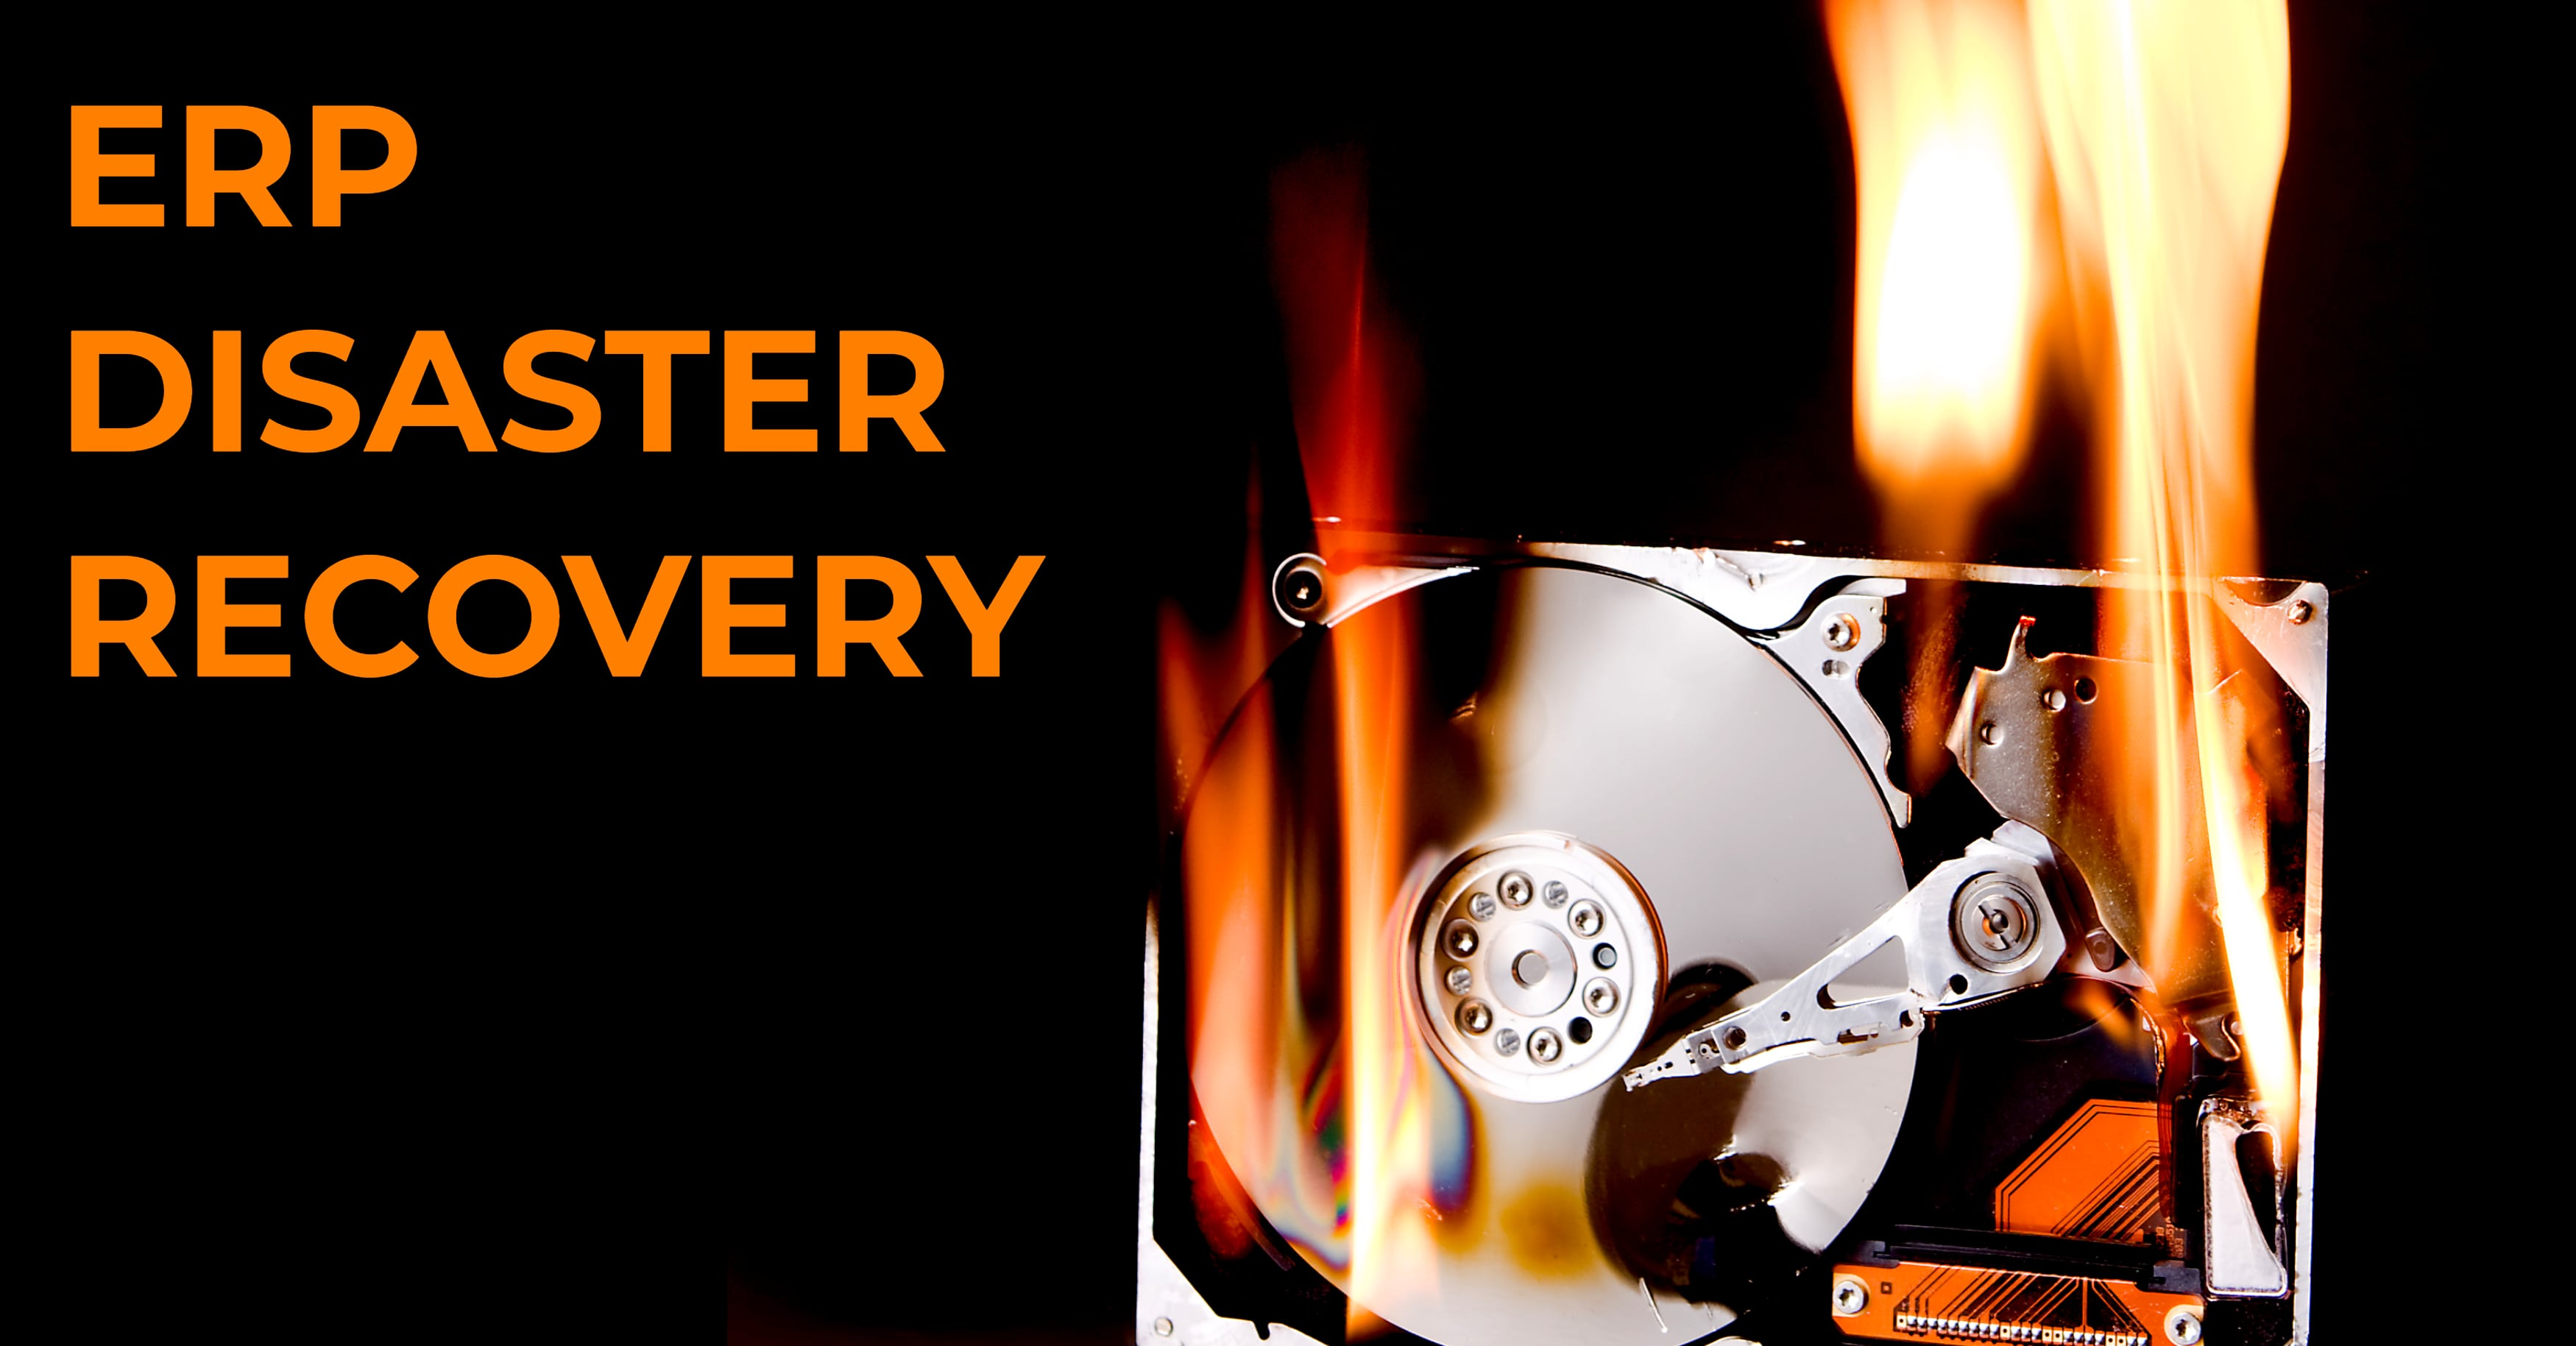 ERP Disaster Recovery